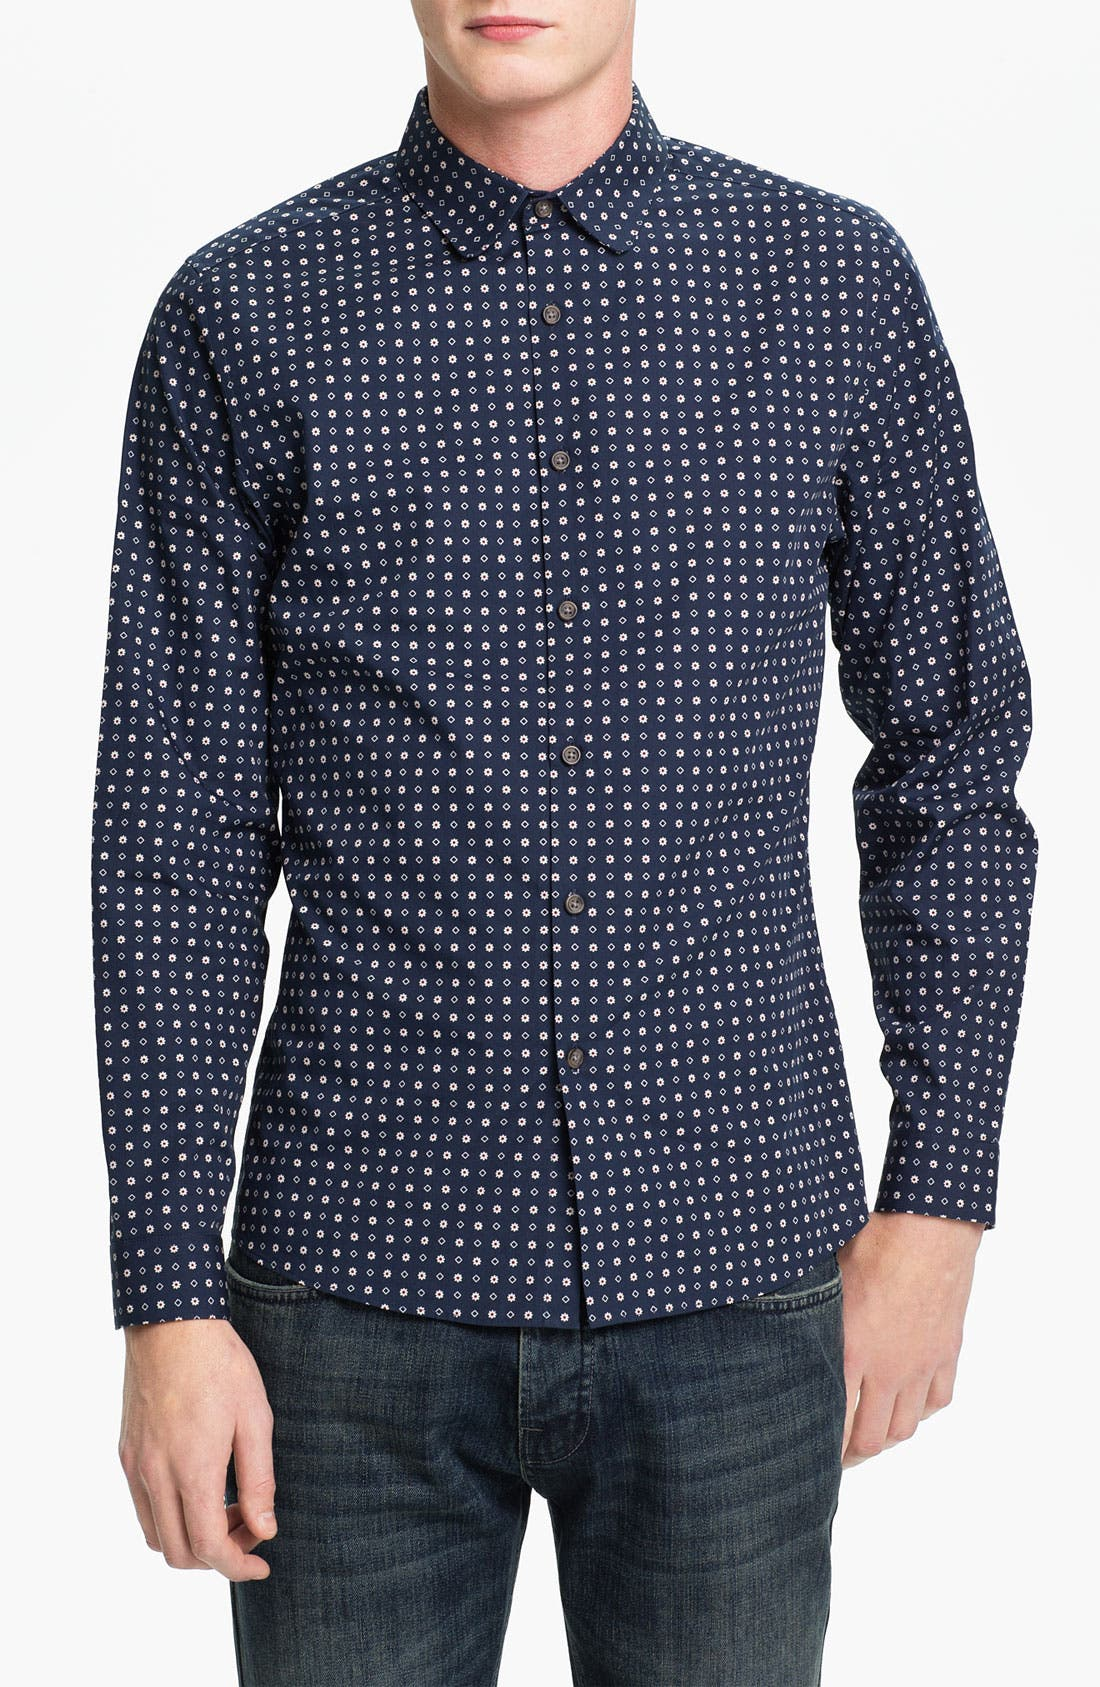 Alternate Image 1 Selected - Topman Floral Print Slim Fit Dress Shirt